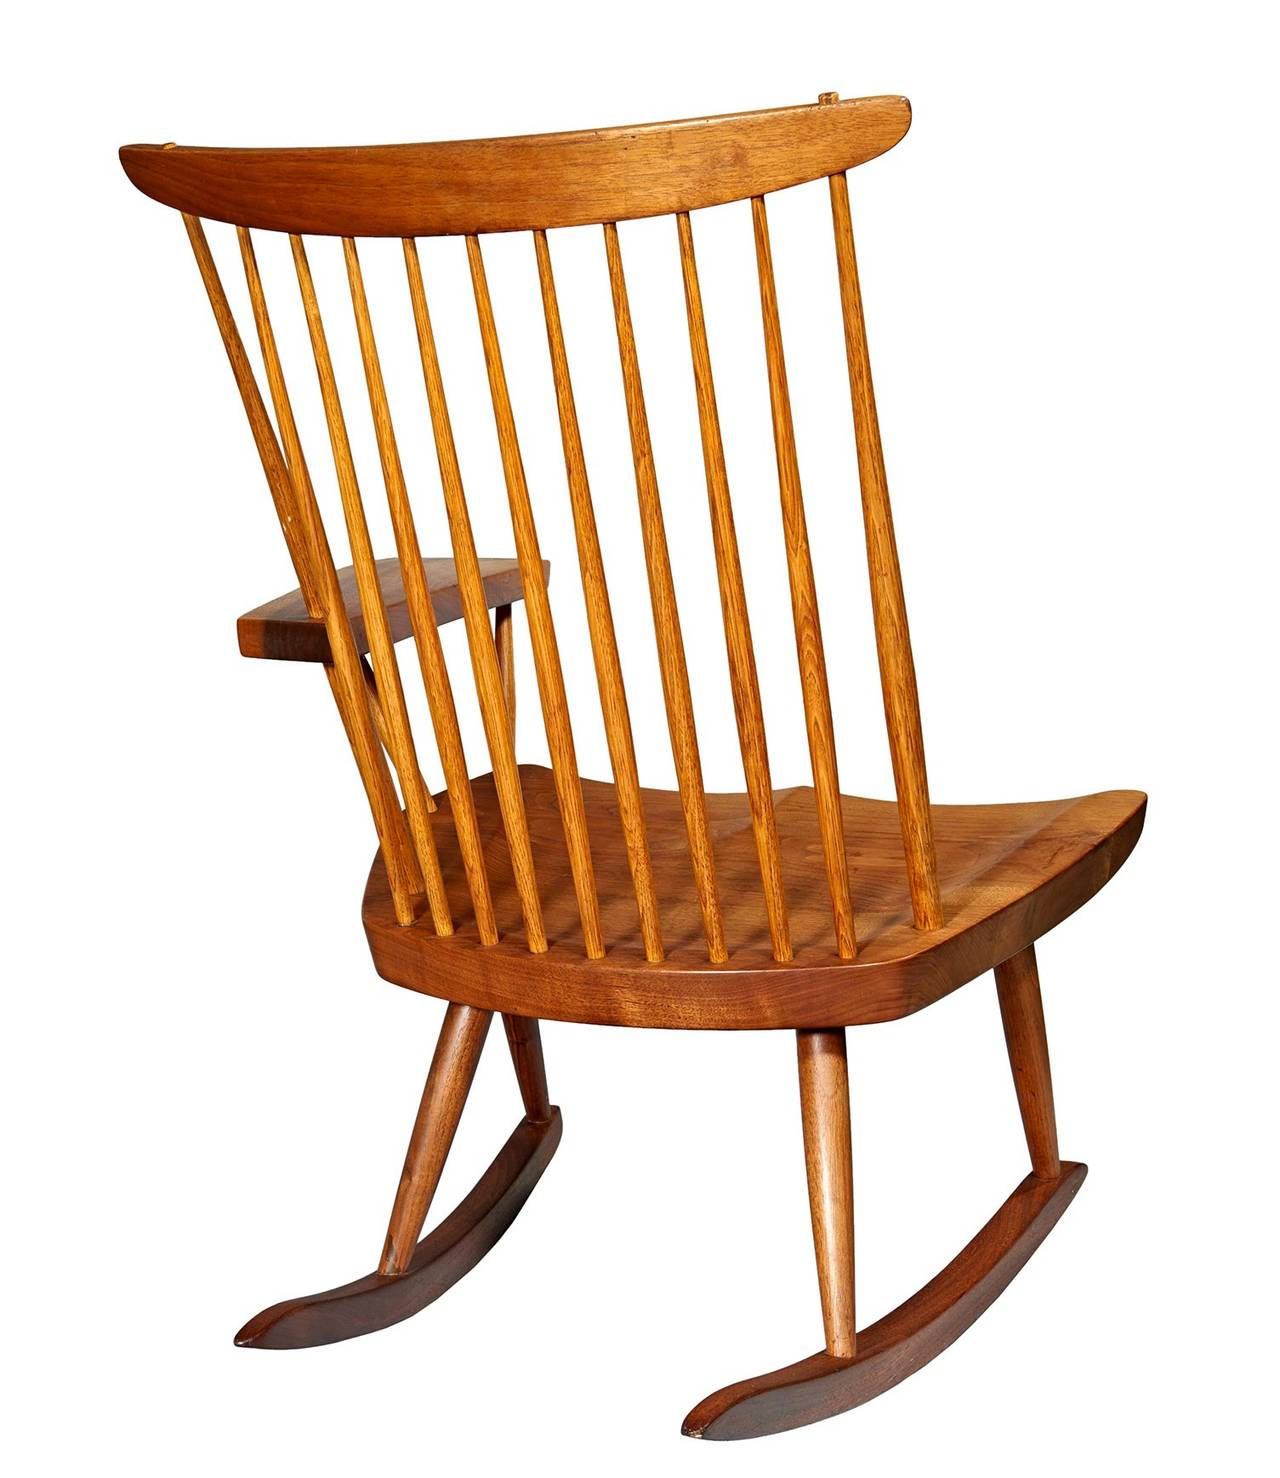 American Rocking Chair with Free-Edge Arm by George Nakashima For Sale